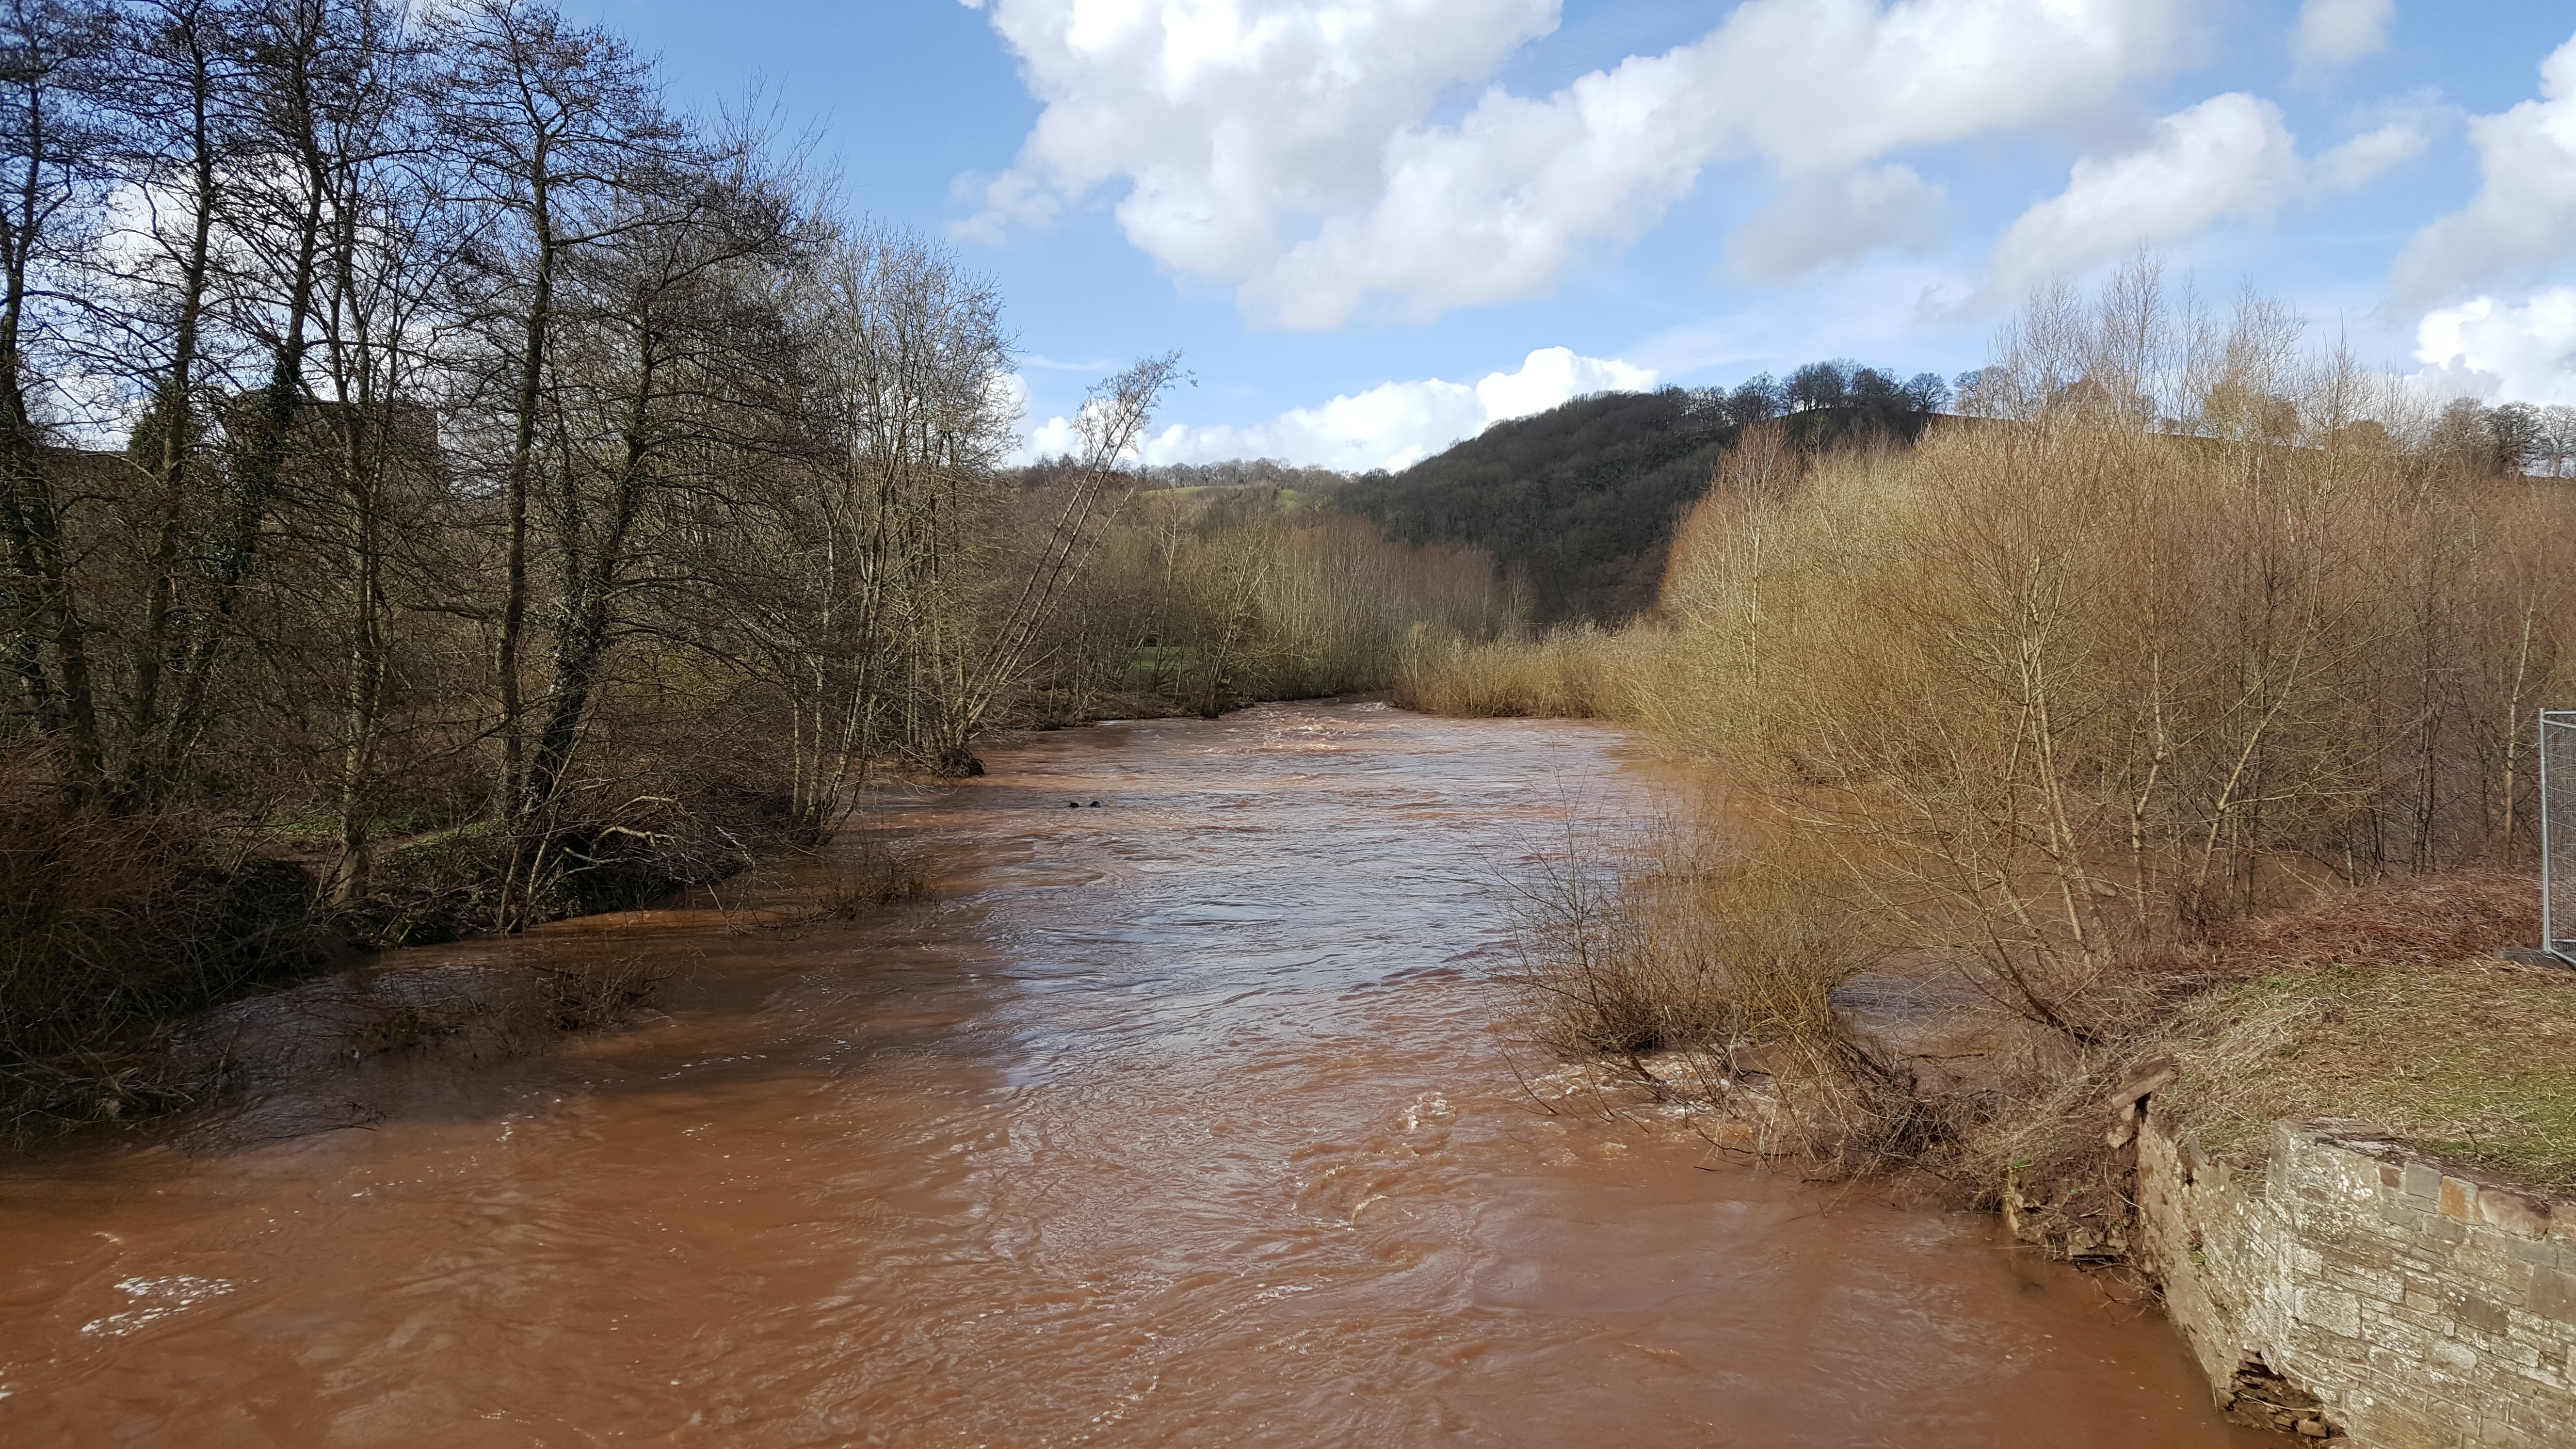 The River Monnow